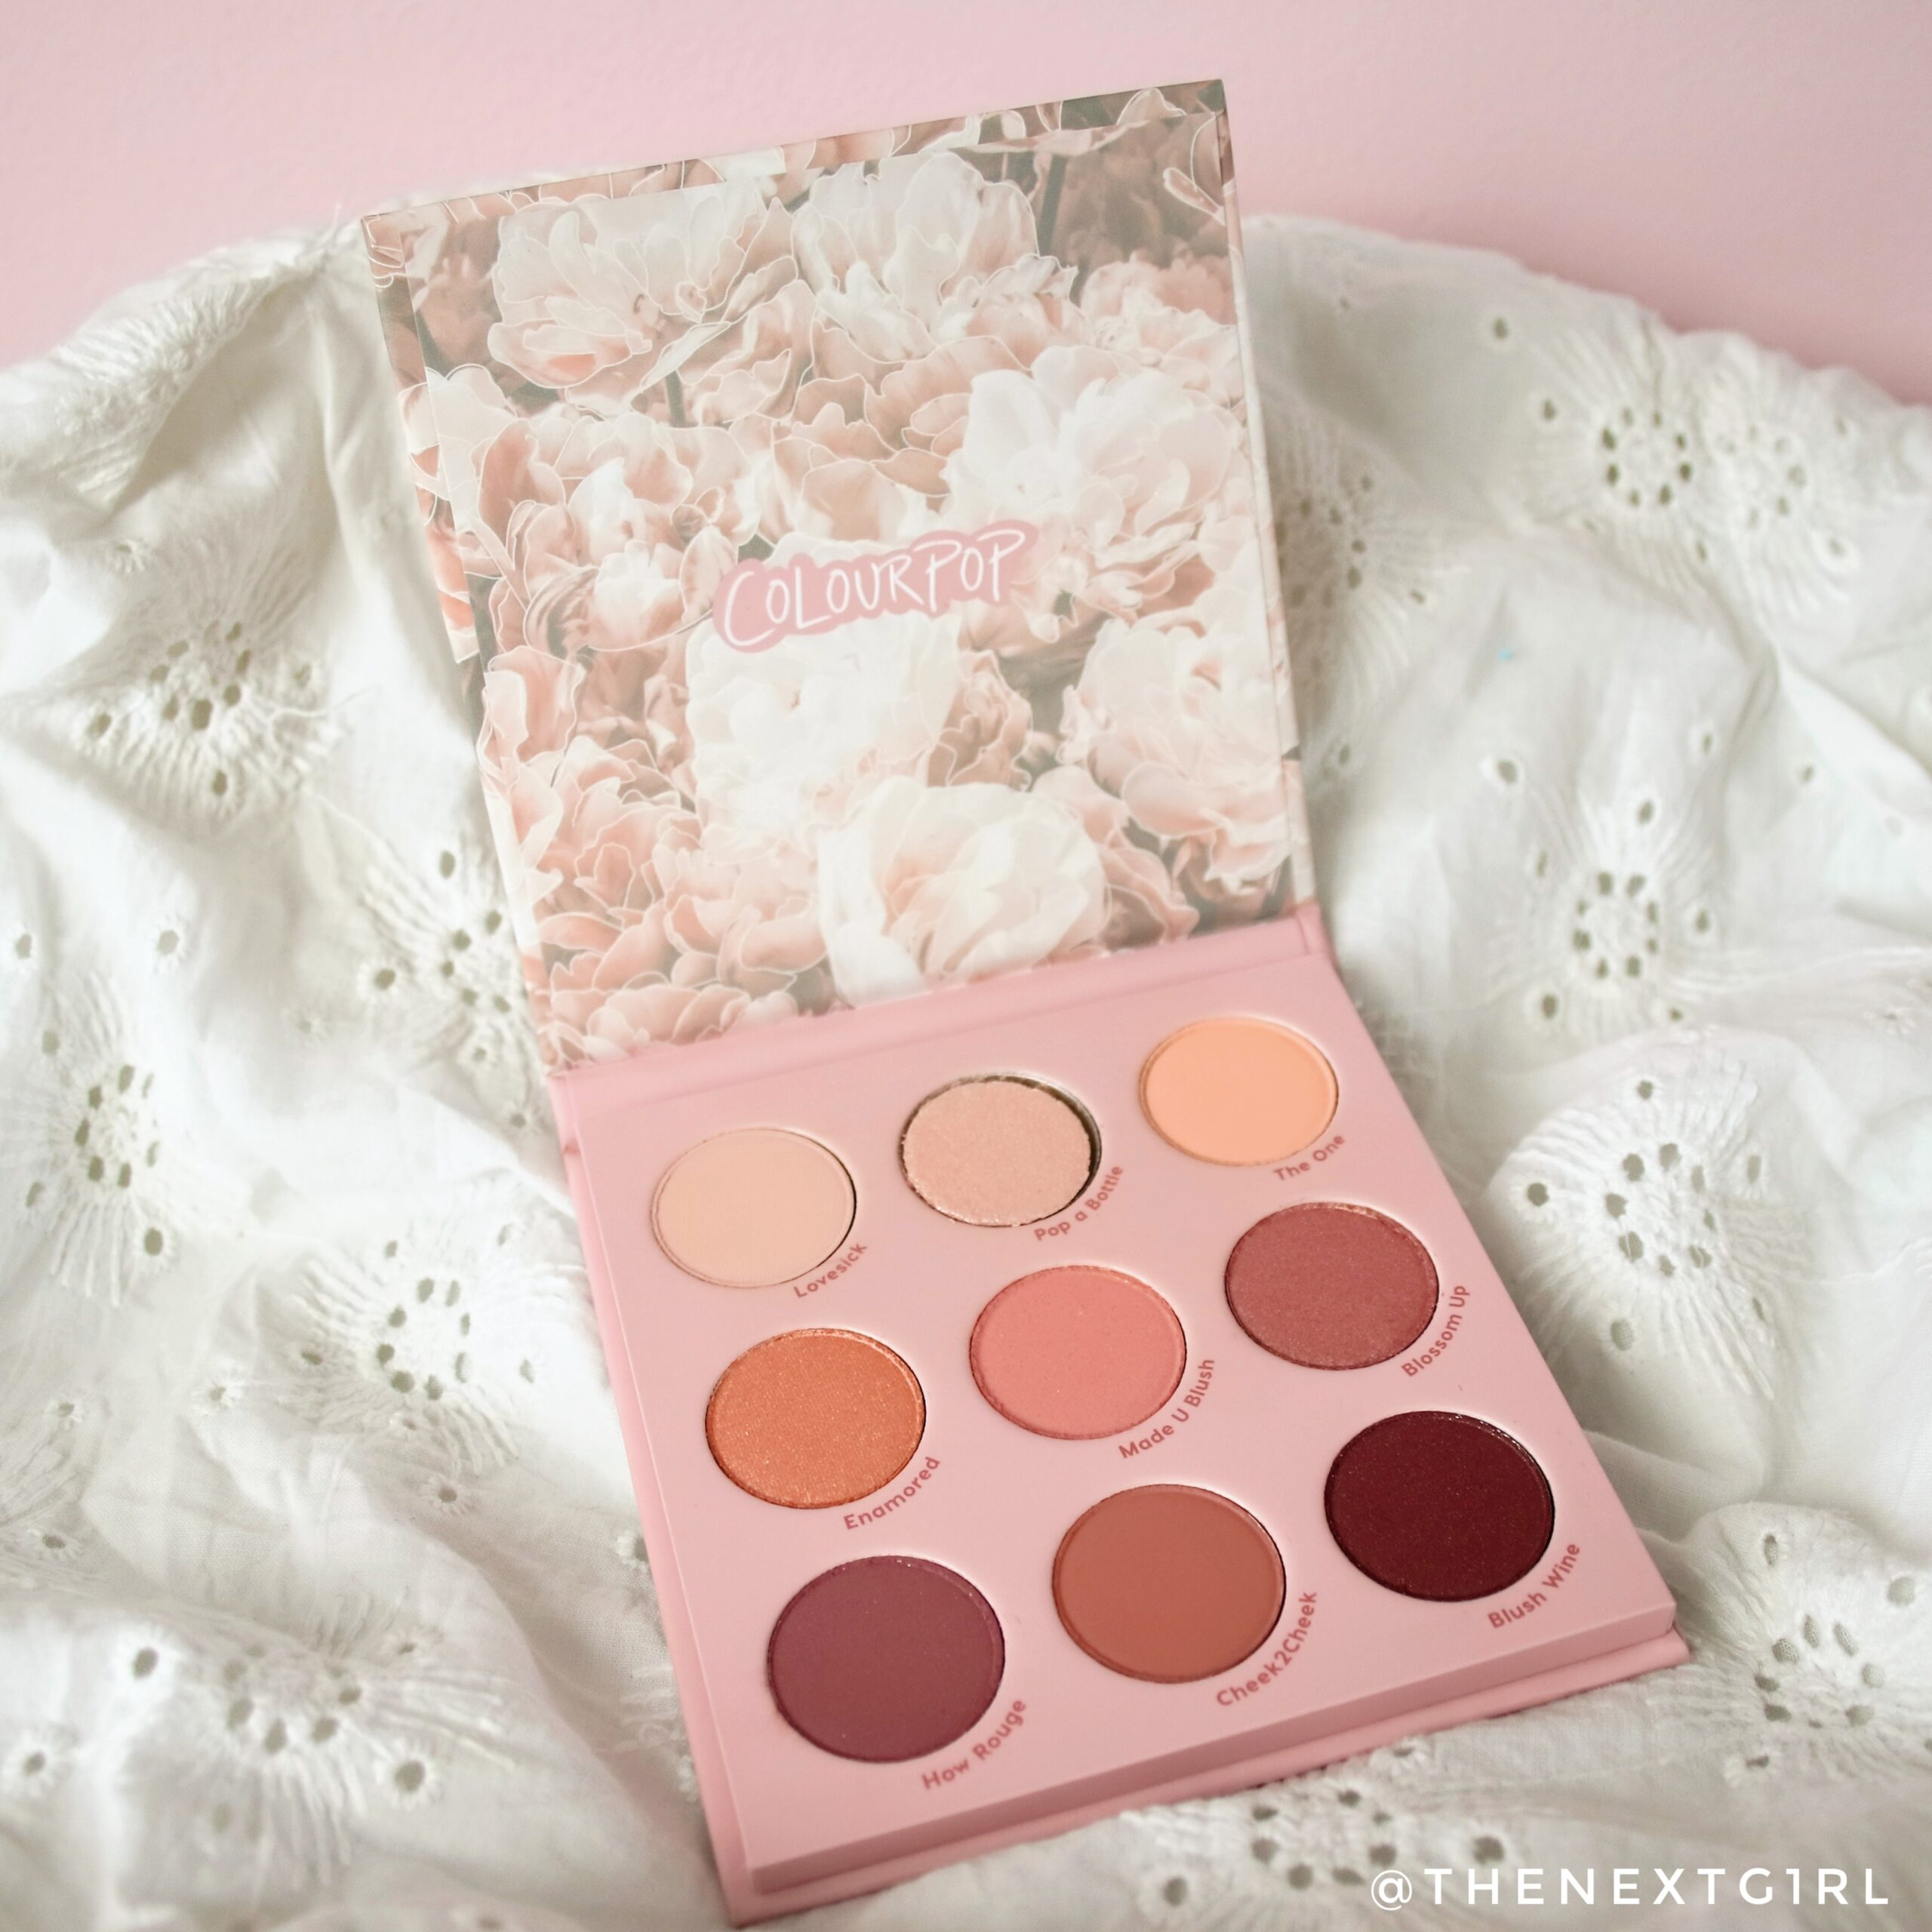 Colourpop Blush Crush pressed powder palette